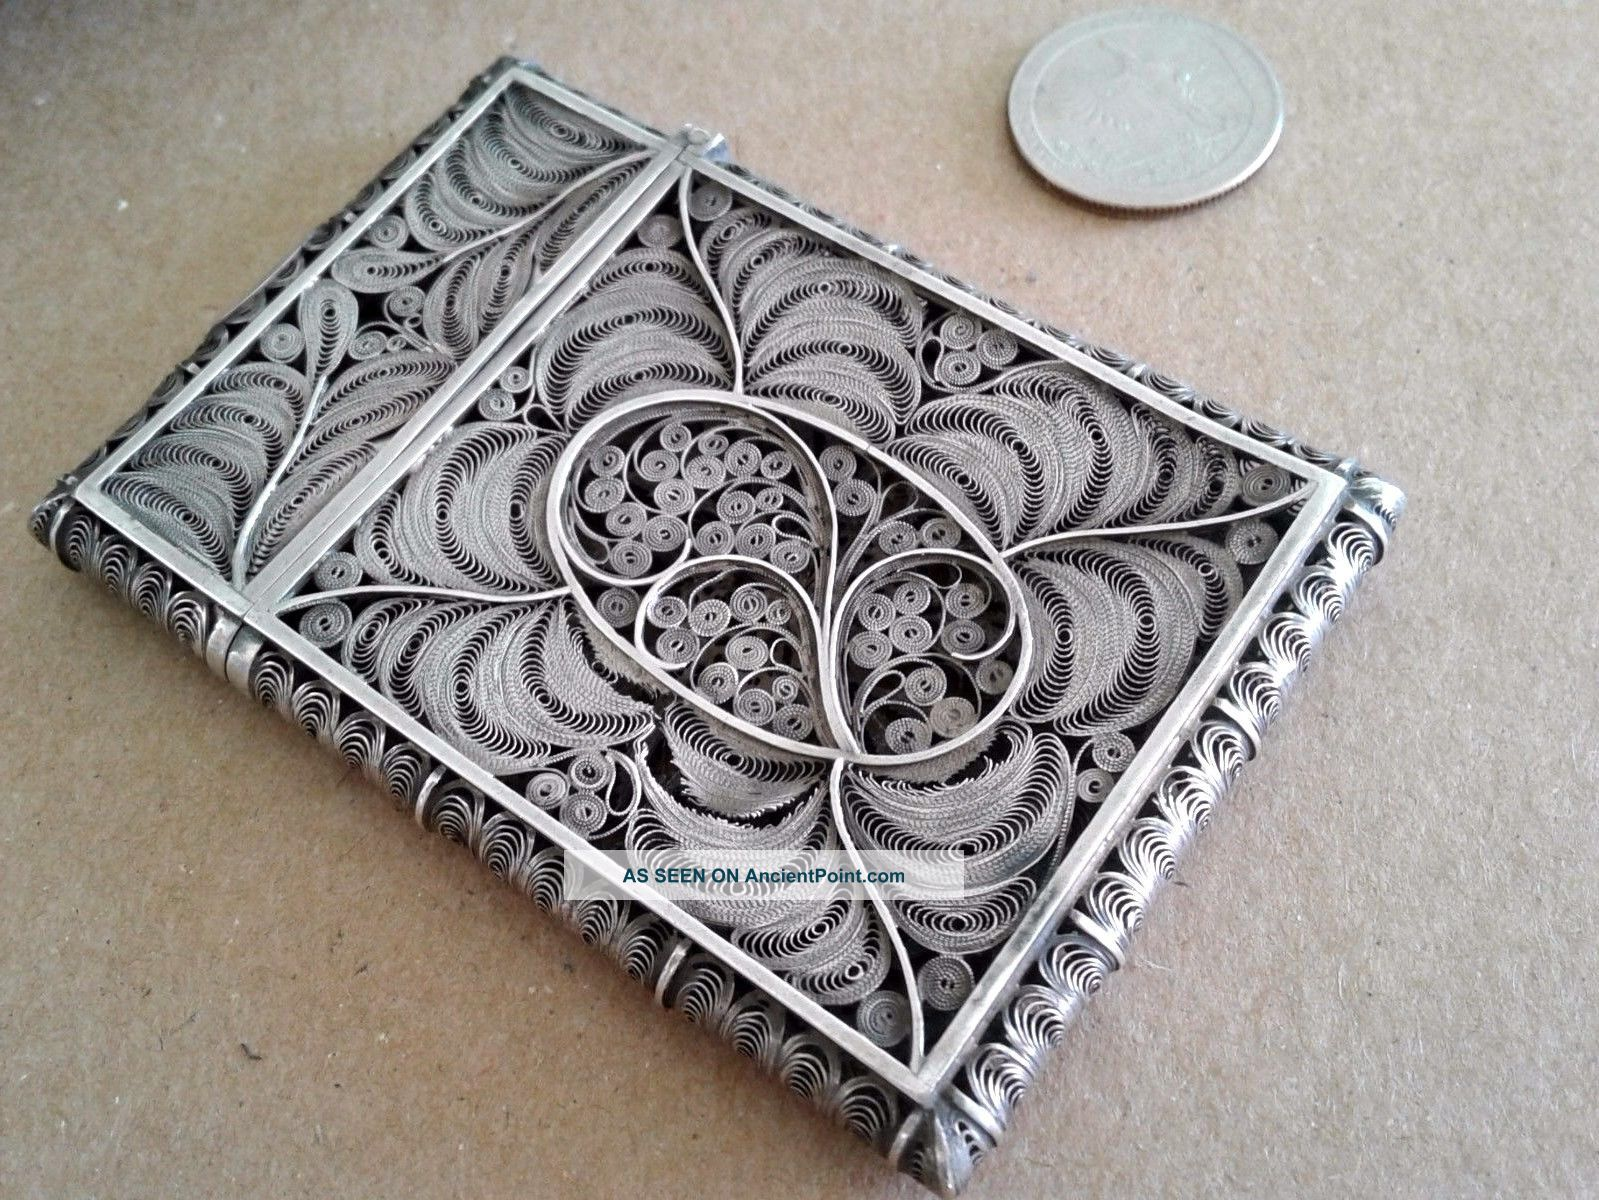 Exceptional Antique Silver Filigree Calling Card Case 1850s Boxes photo